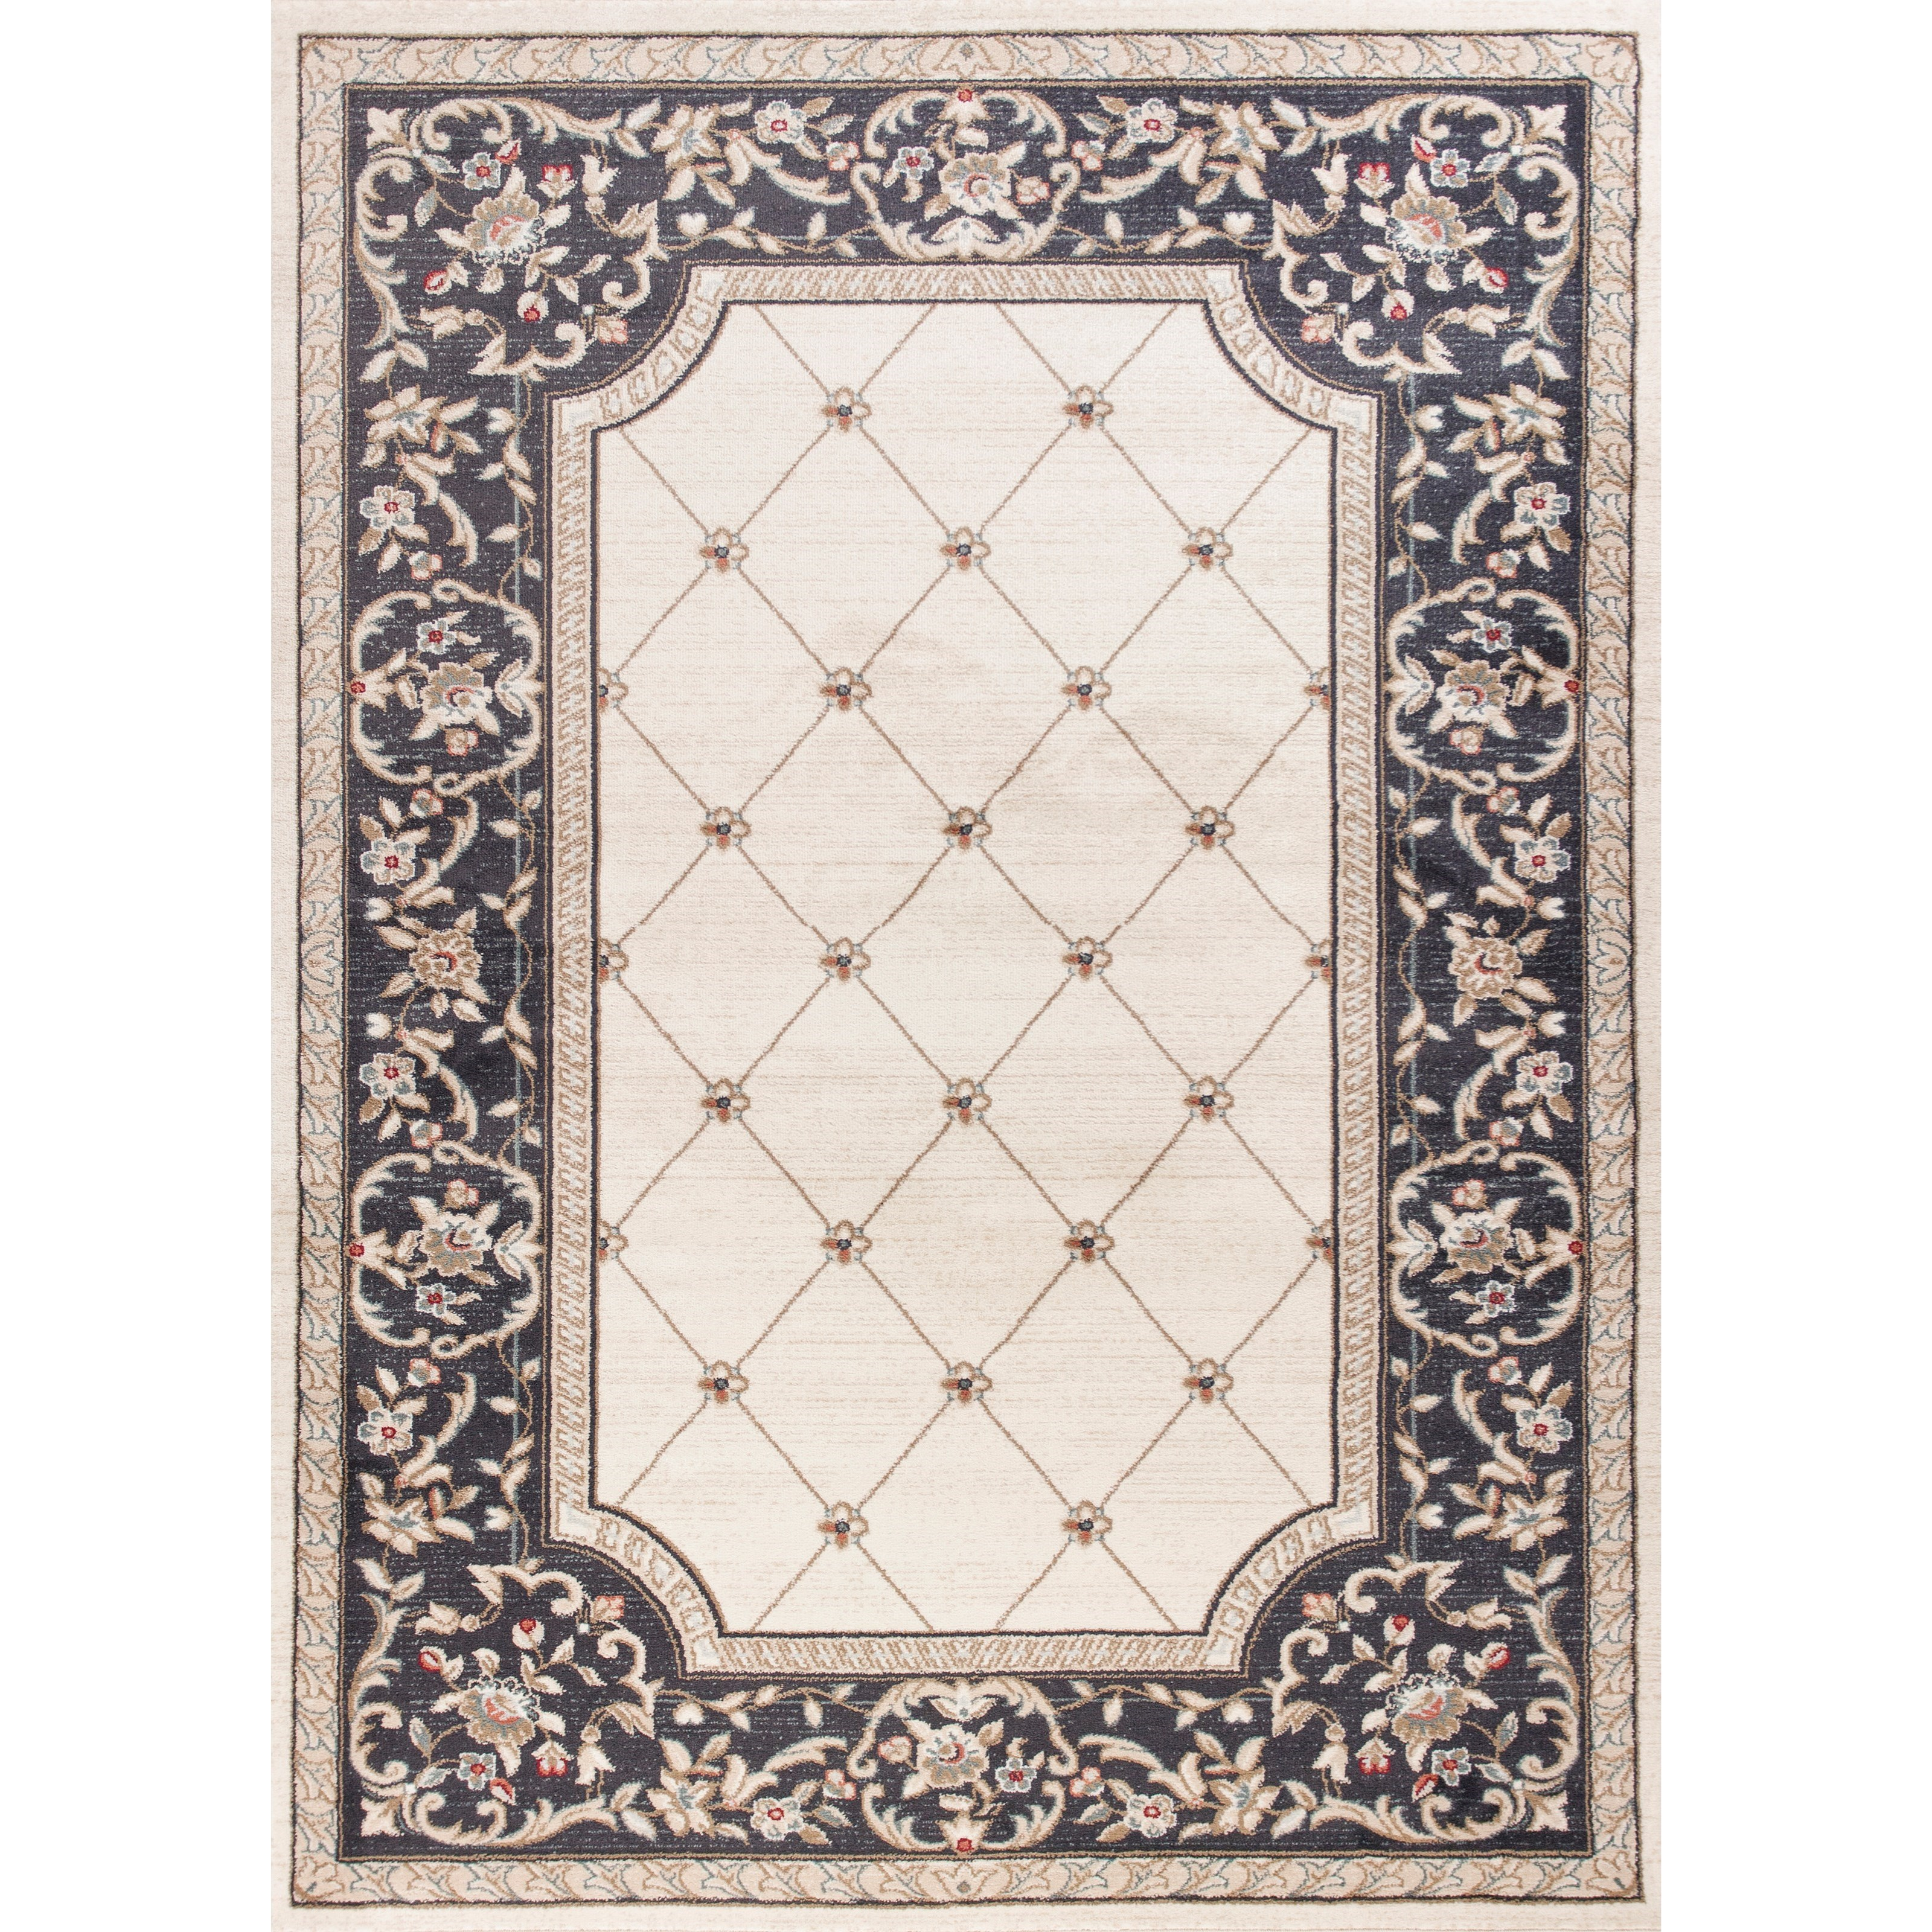 "Avalon 5'3"" X 3'3"" Area Rug by Kas at Zak's Home"